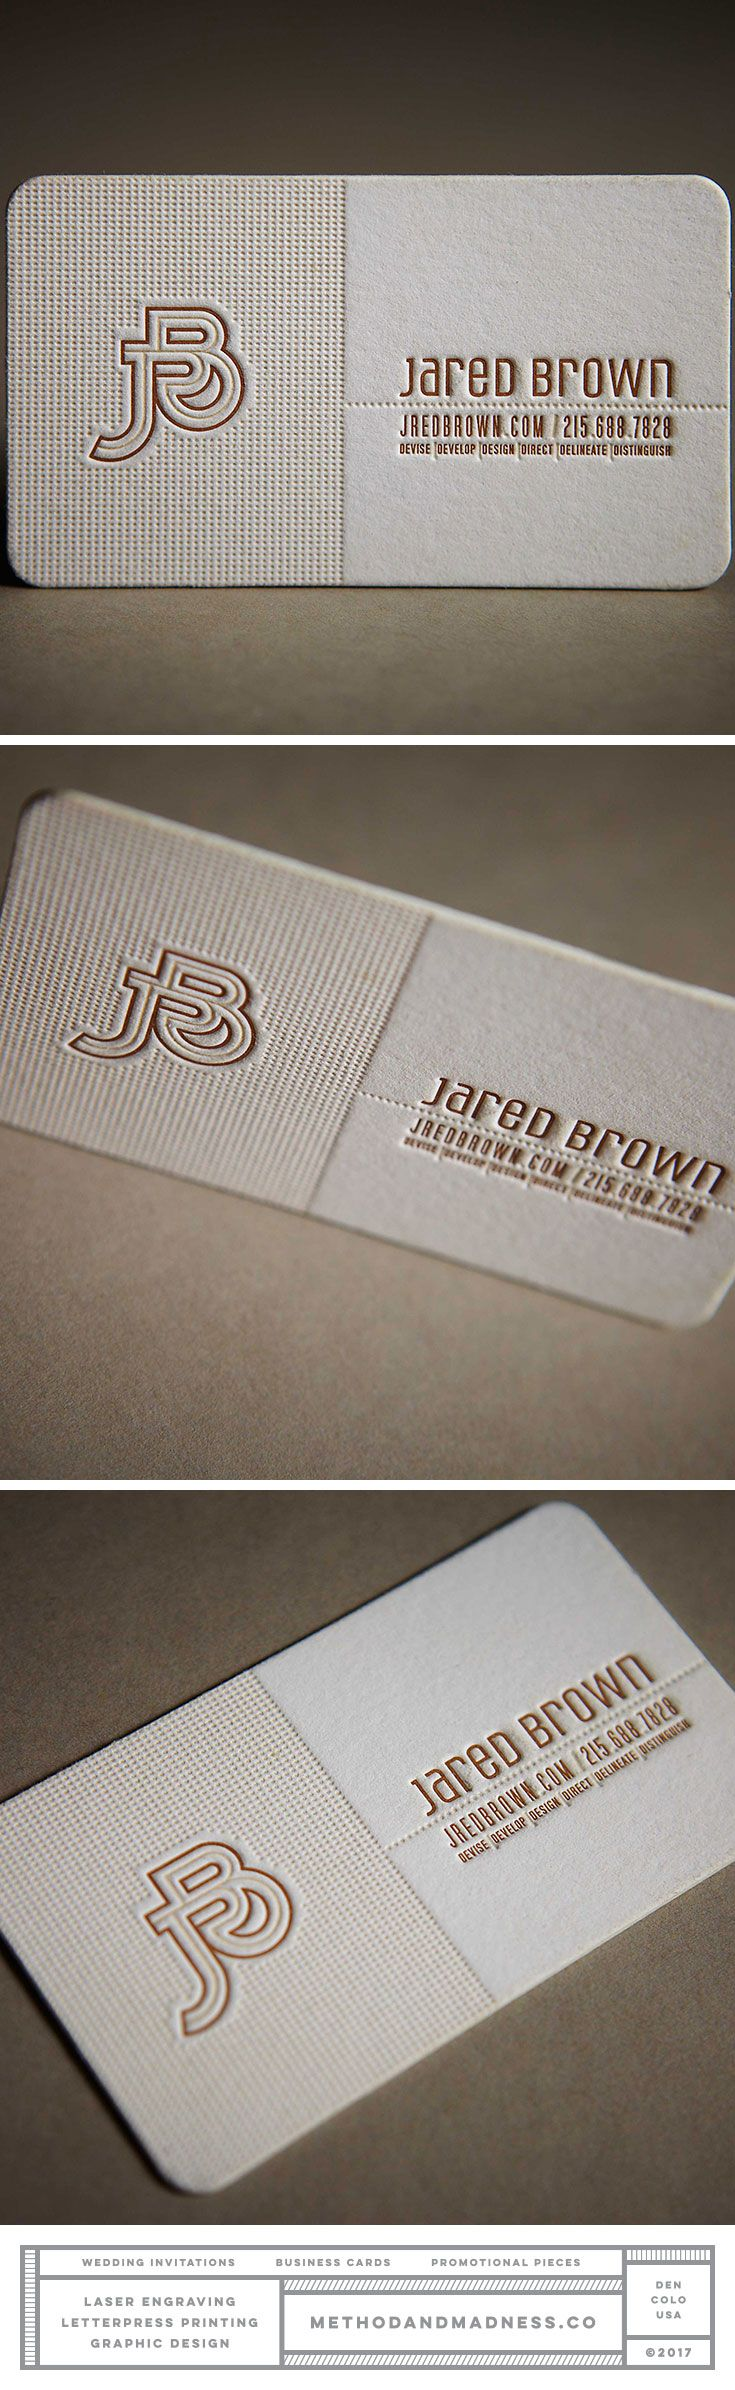 54 best Business Cards images on Pinterest | Business cards, Carte ...